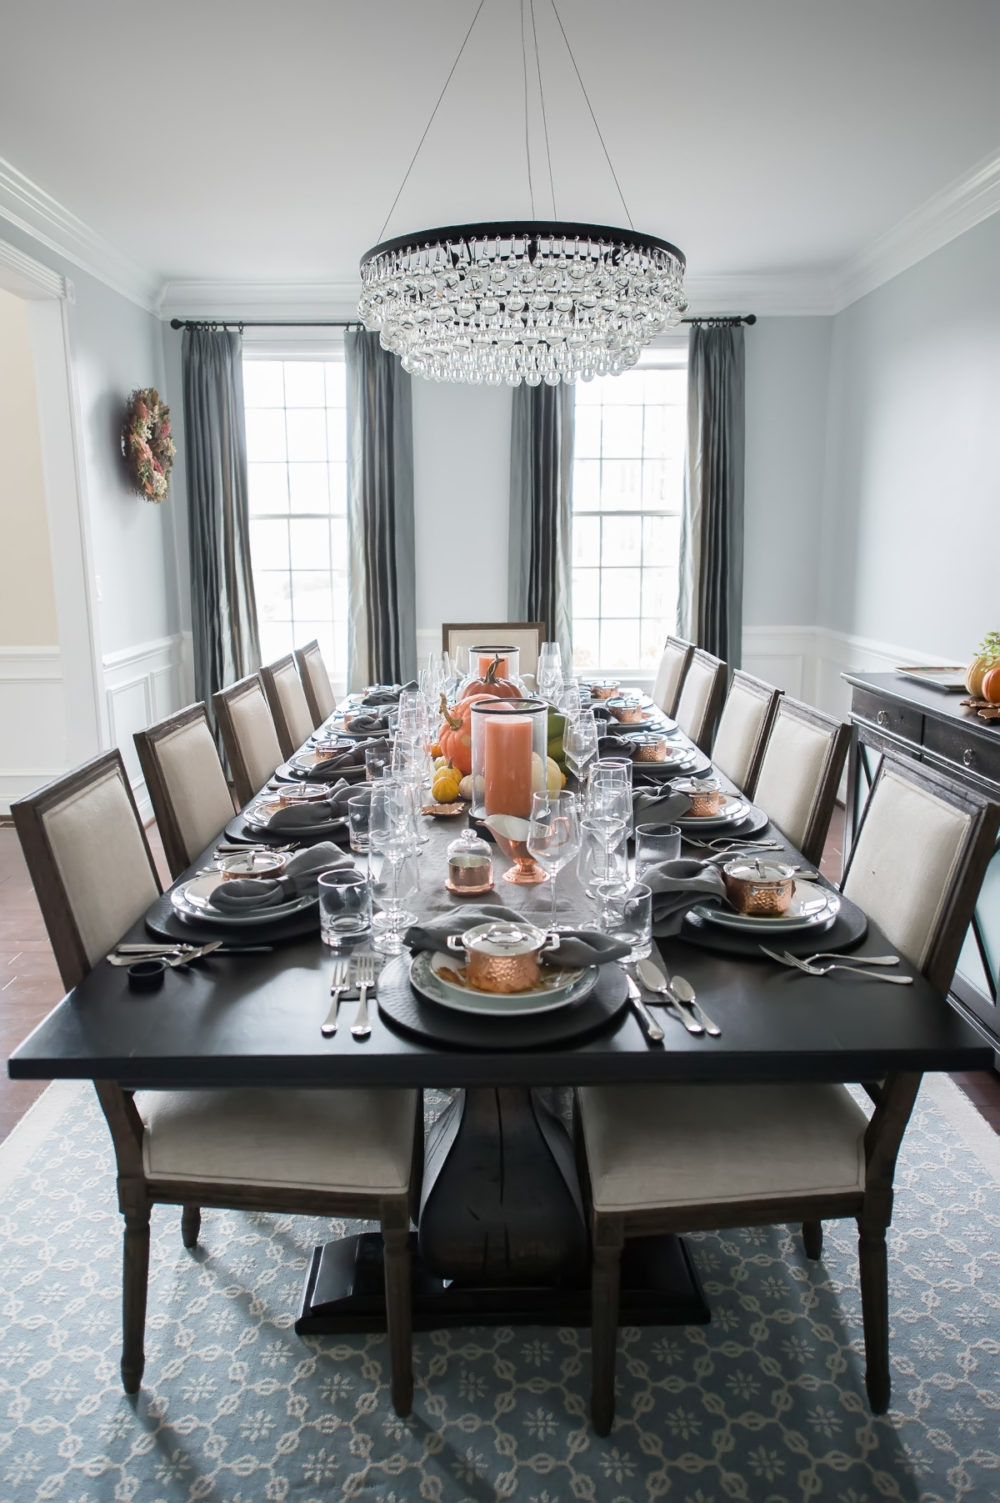 Petite Fashion and Style Blog | Williams Sonoma In Home Design Services - Our Thanksgiving Tablescape with Williams Sonoma by popular Michigan style blogger The Blue Hydrangeas